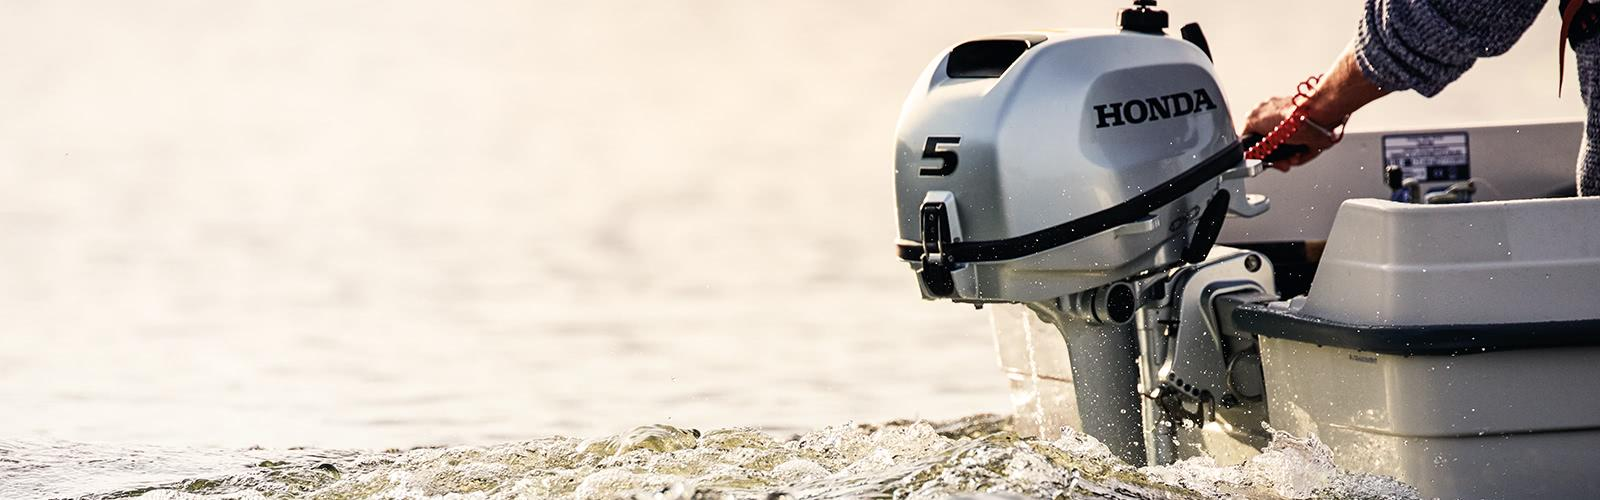 Choosing the Right Outboard Engine